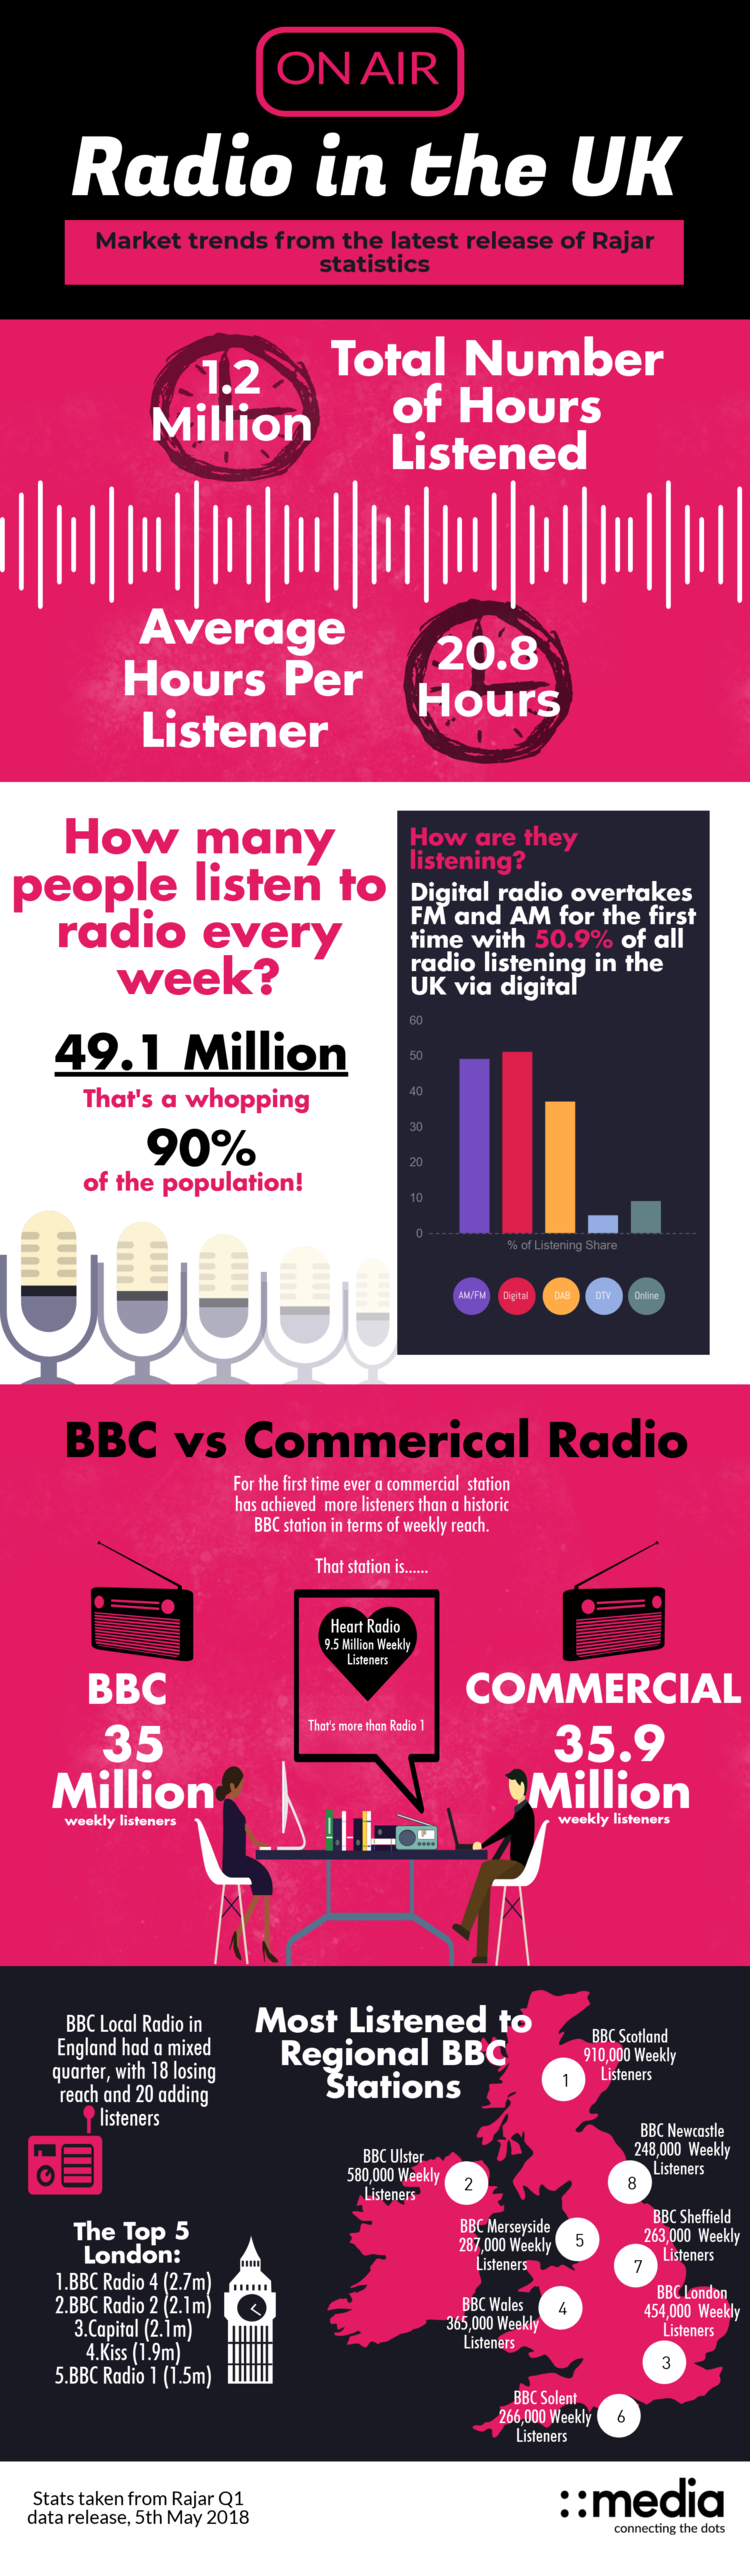 Broadcast PR: Rajar Q1 2018 Figures and Trends